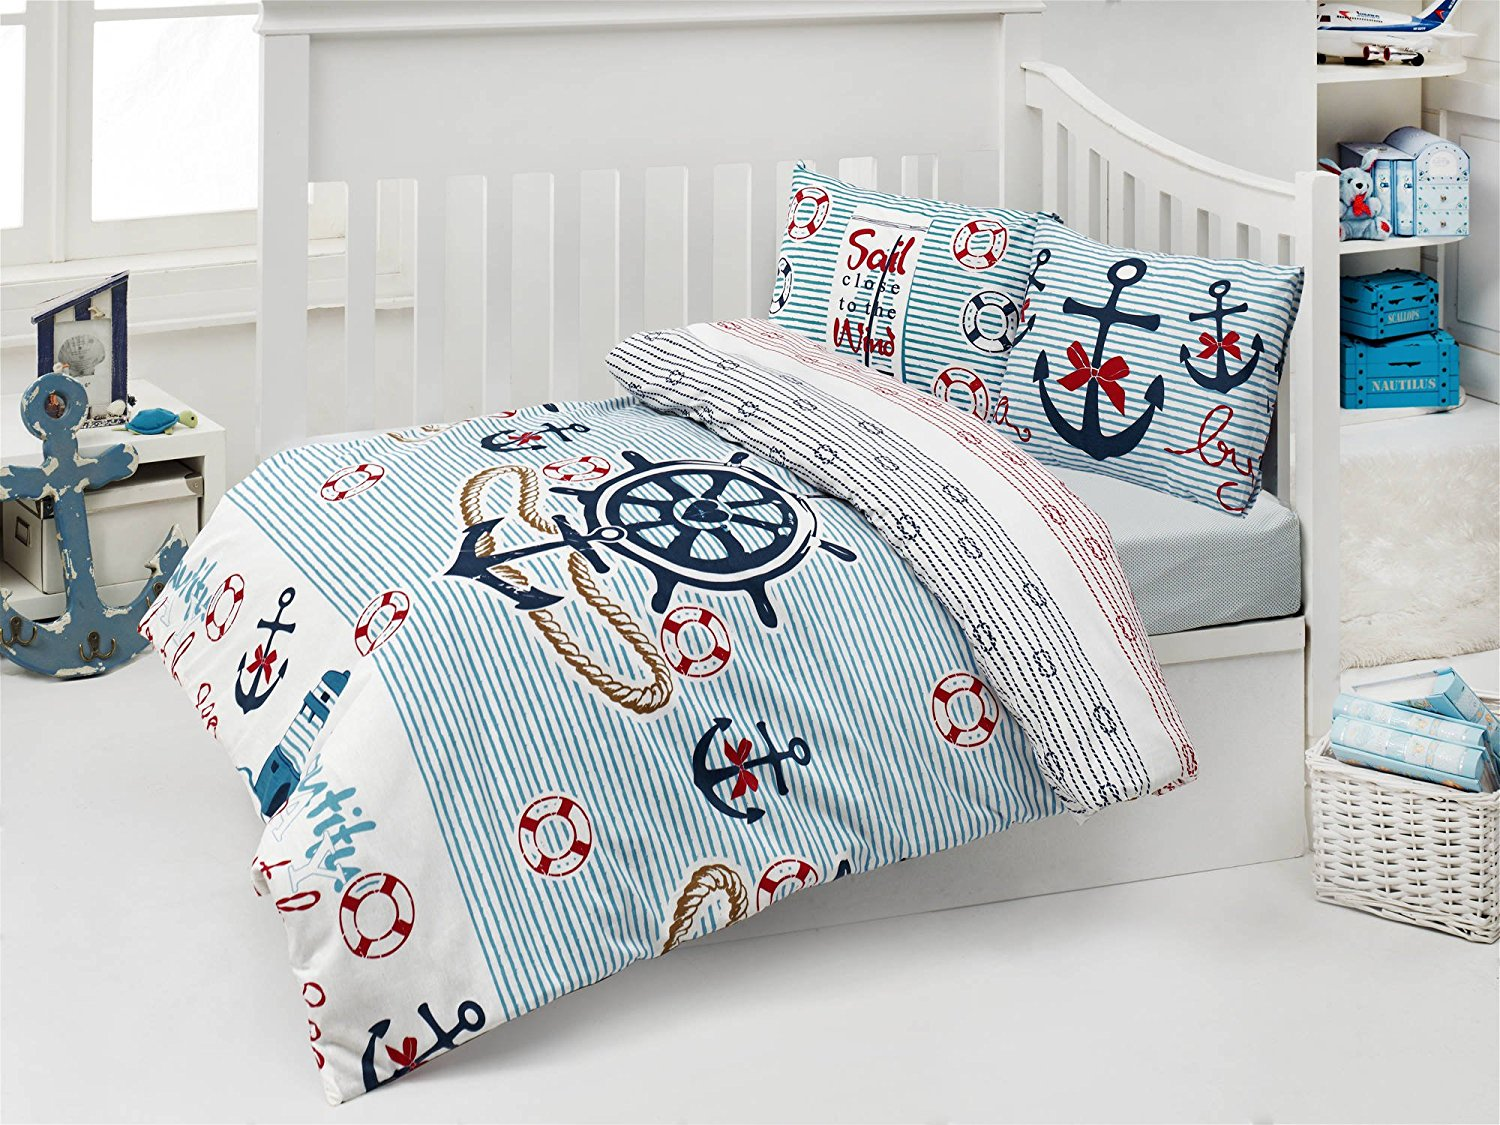 LaModaHome 5 Pcs Baby Boat Anchor Sea Water Buoy Rope Sky Blue Toddler Cotton Bedding COTTON COMFORTER Set, Turkey 100% Cotton Nursery [with COTTON Quilt/Comforter]